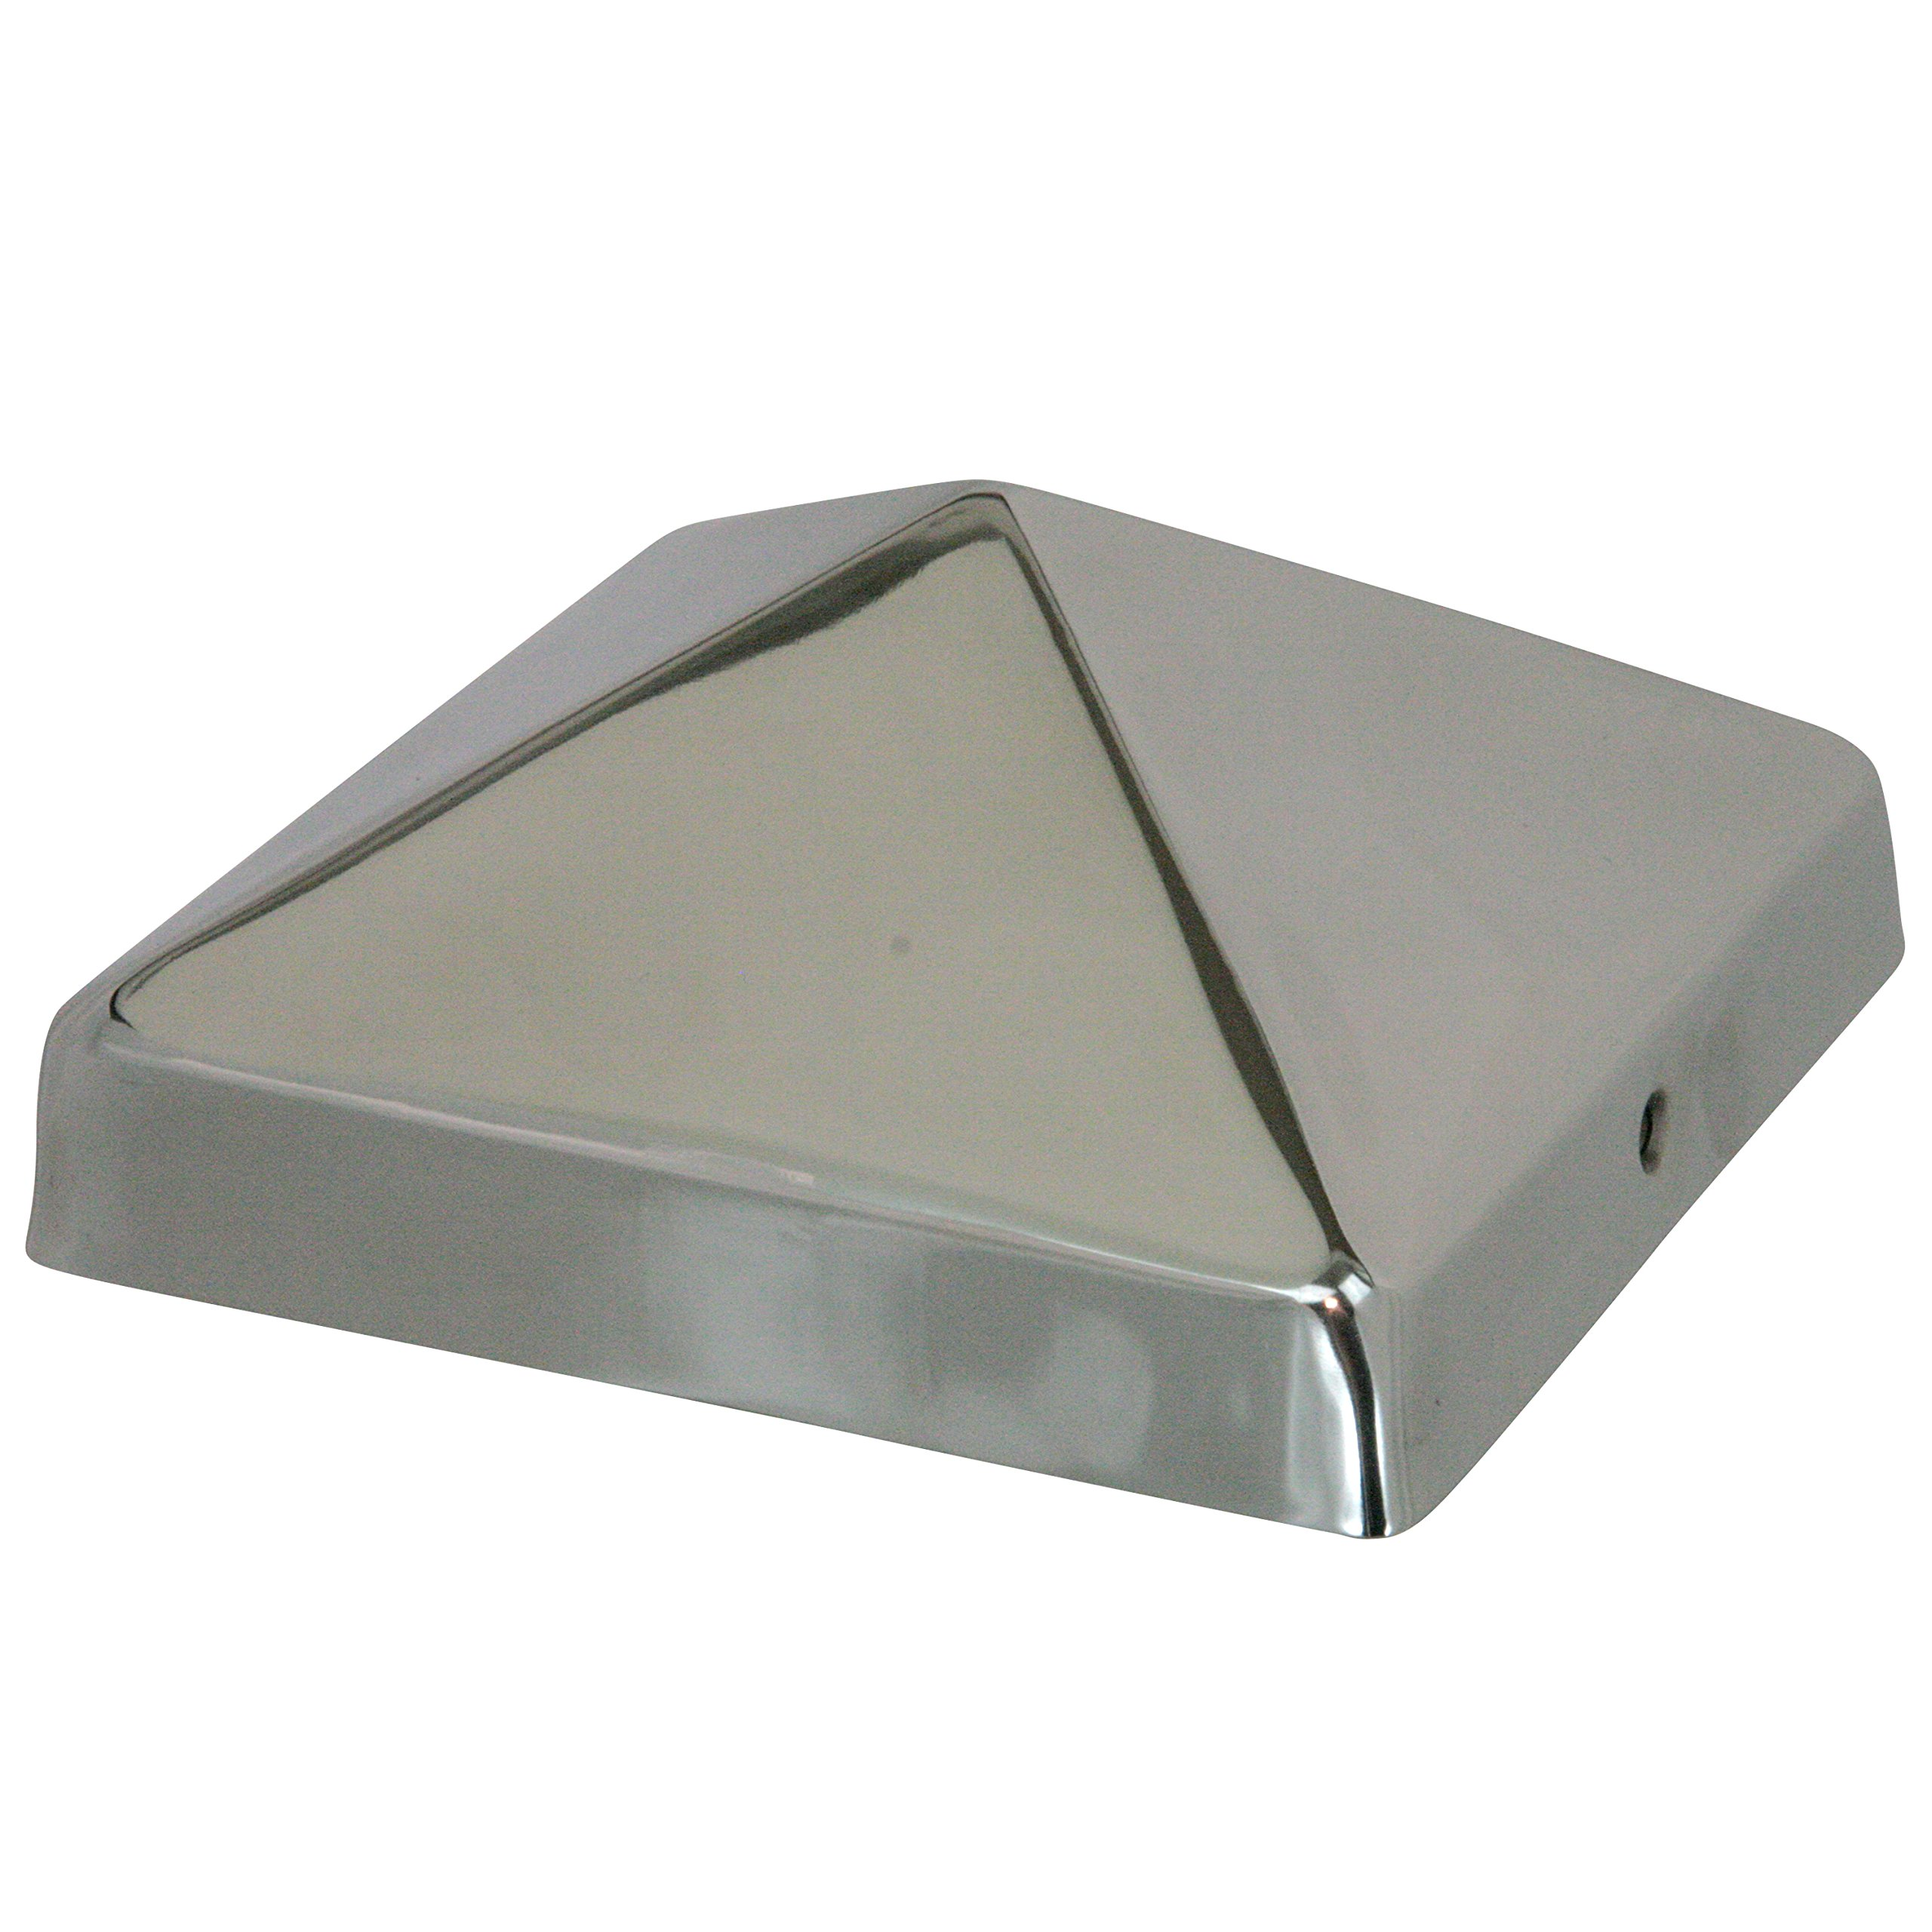 6x6 Stainless Steel Pyramid Post Cap by Captiva - Extended Lip - Stainless Steel - Will Not Rust - (5-1/2'' x 5-1/2'')